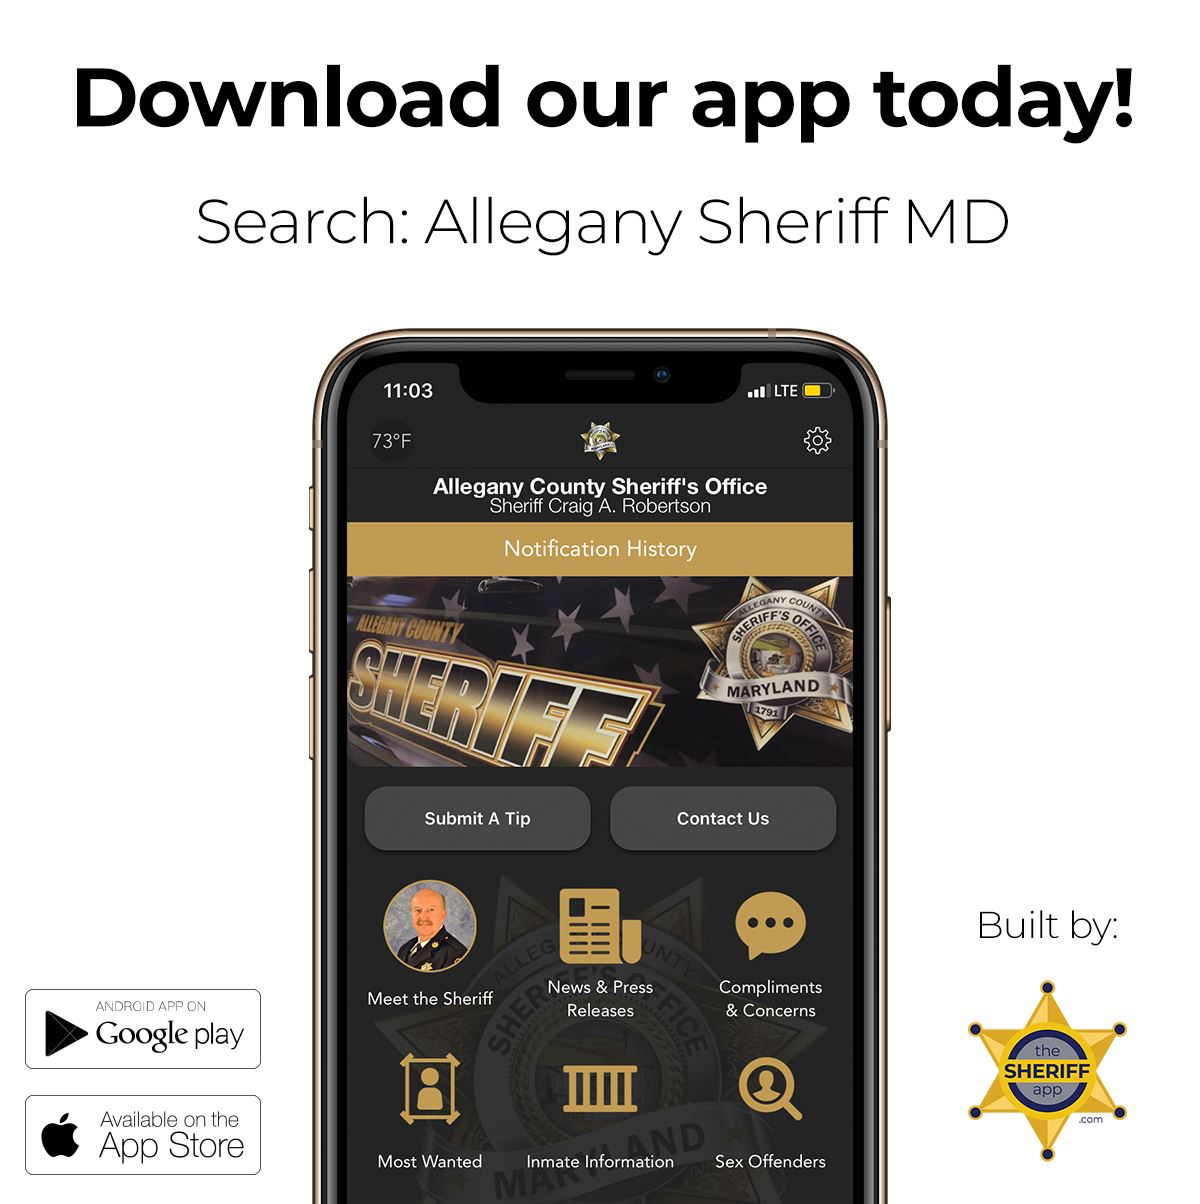 DownloadSheriffAppImage